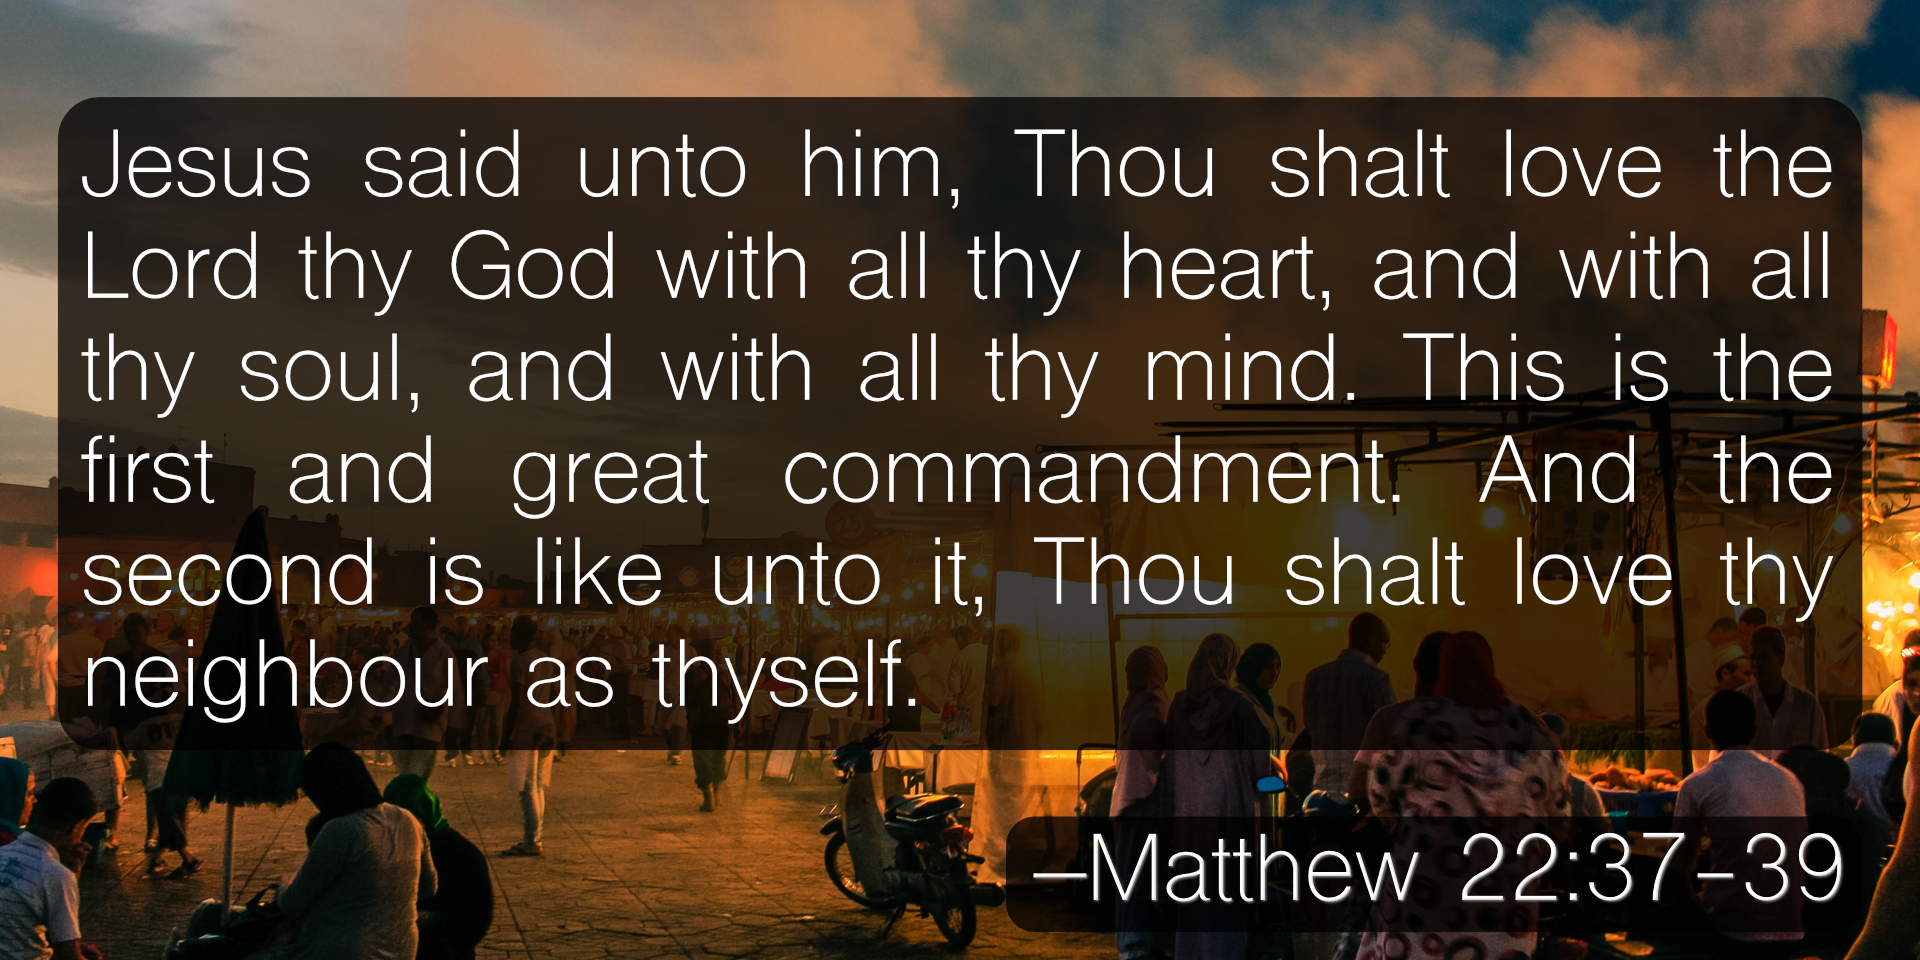 Jesus said unto him, Thou shalt love the Lord thy God with all thy heart, and with all thy soul, and with all thy mind. This is the first and great commandment. And the second is like unto it, Thou shalt love thy neighbour as thyself. –Matthew 22:37-39